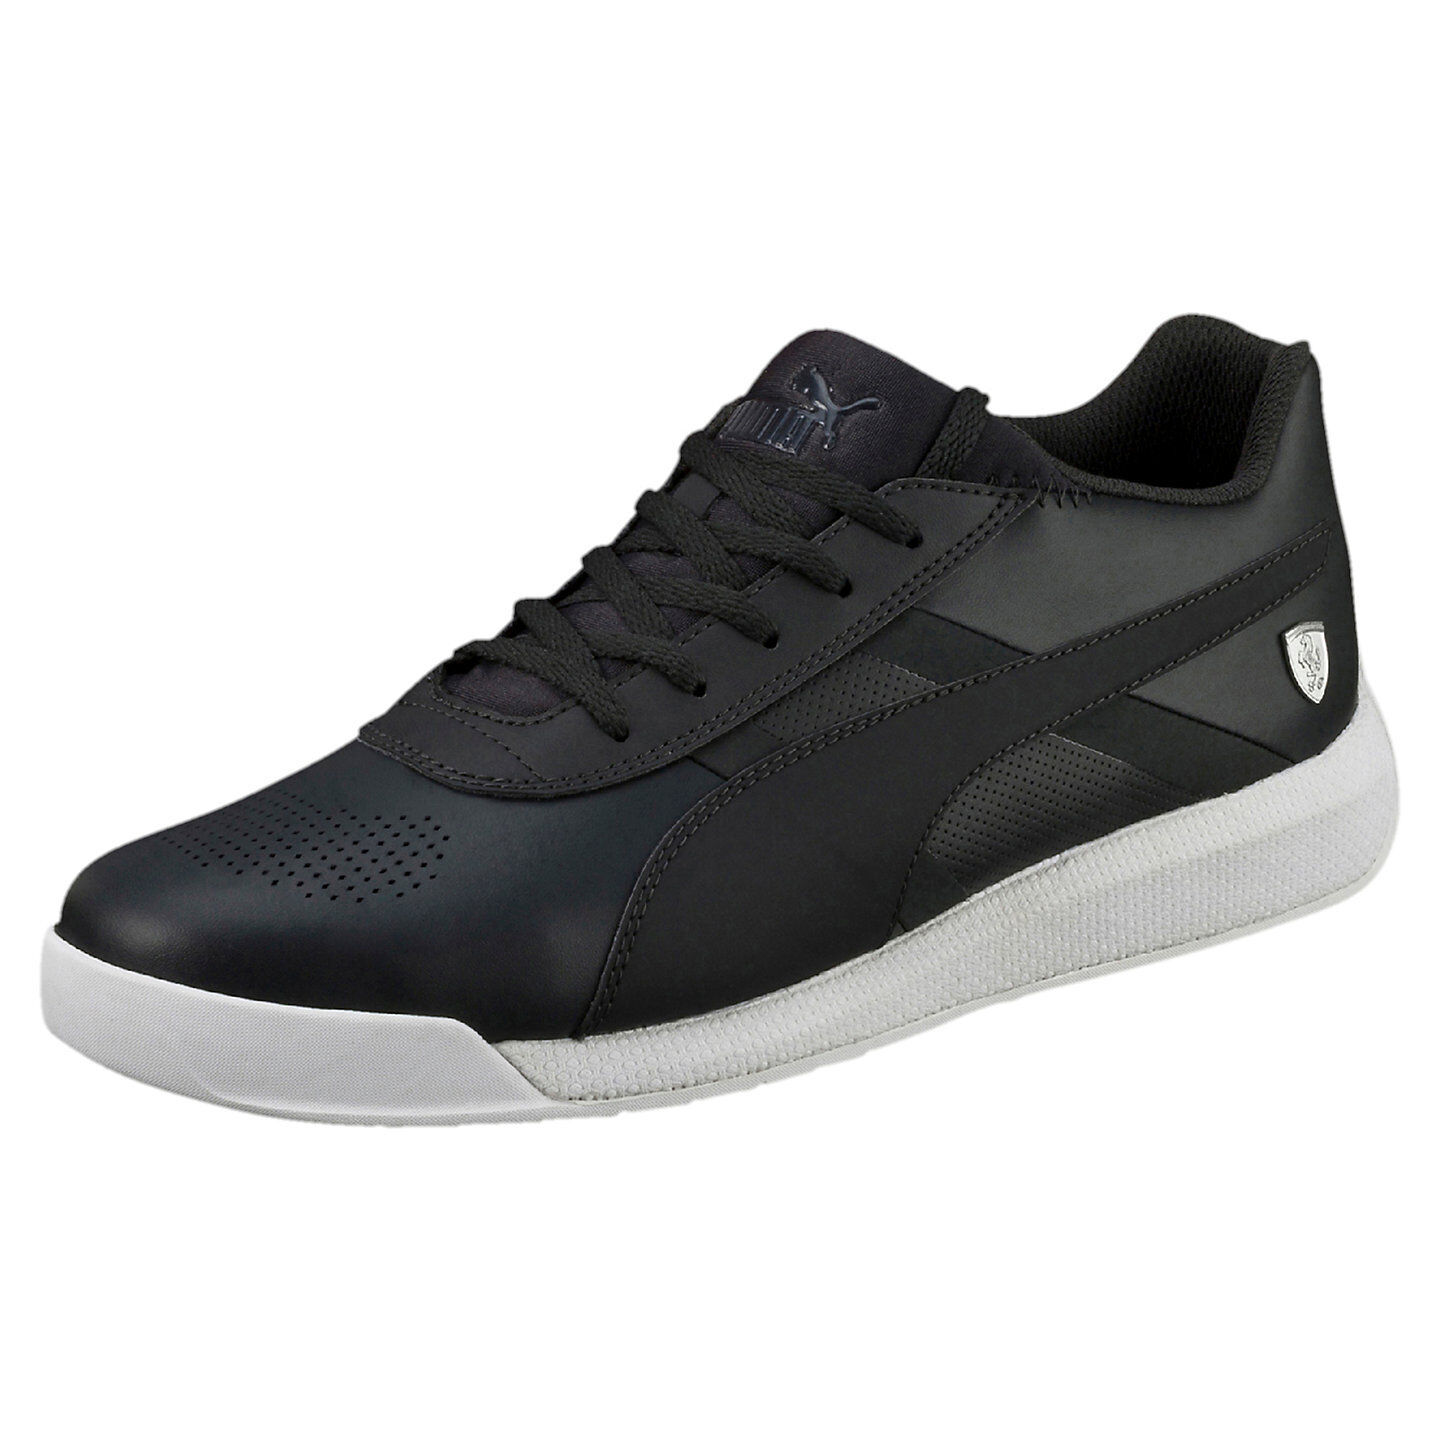 Men's Puma FERRARI PODIO TD Casual Shoes, 305674 01 Comfortable